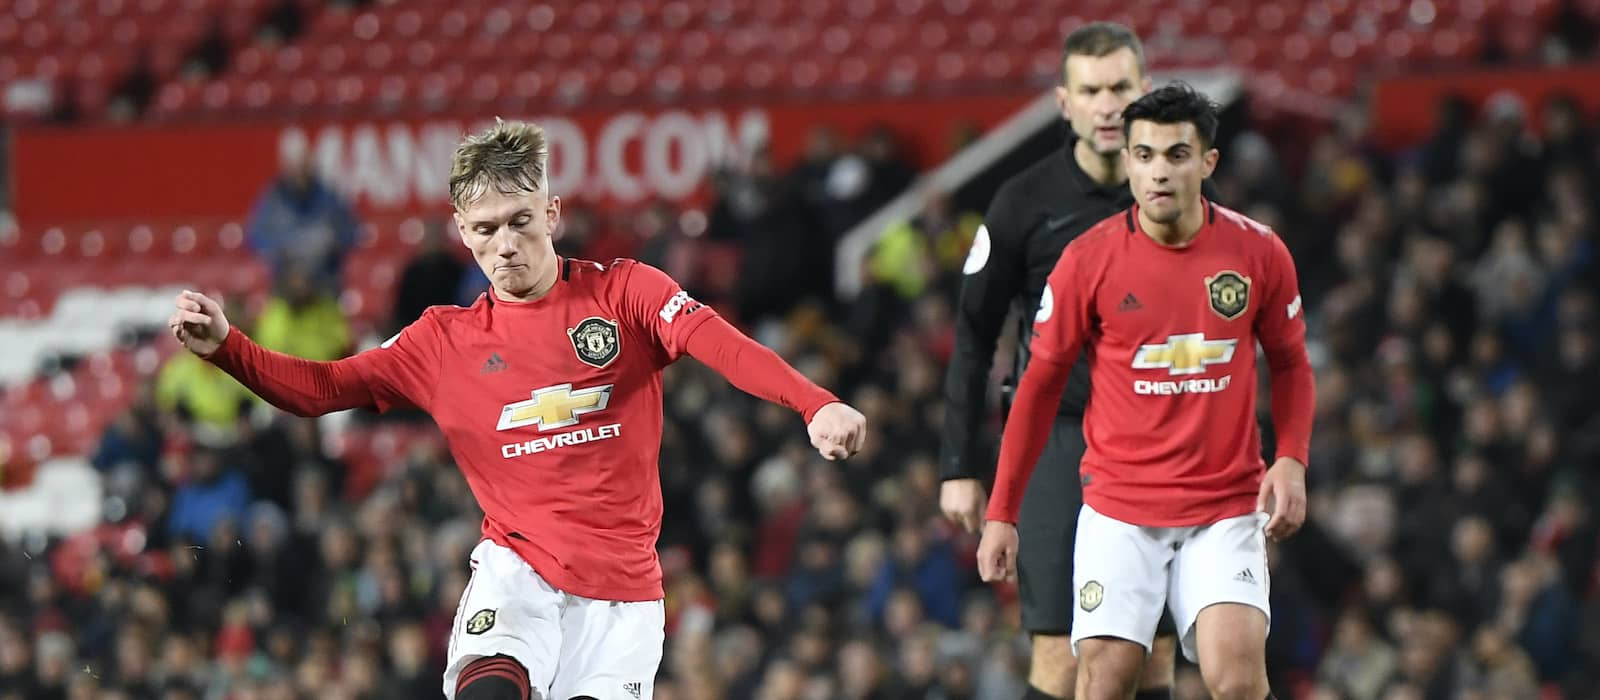 Manchester United youngster could face early promotion